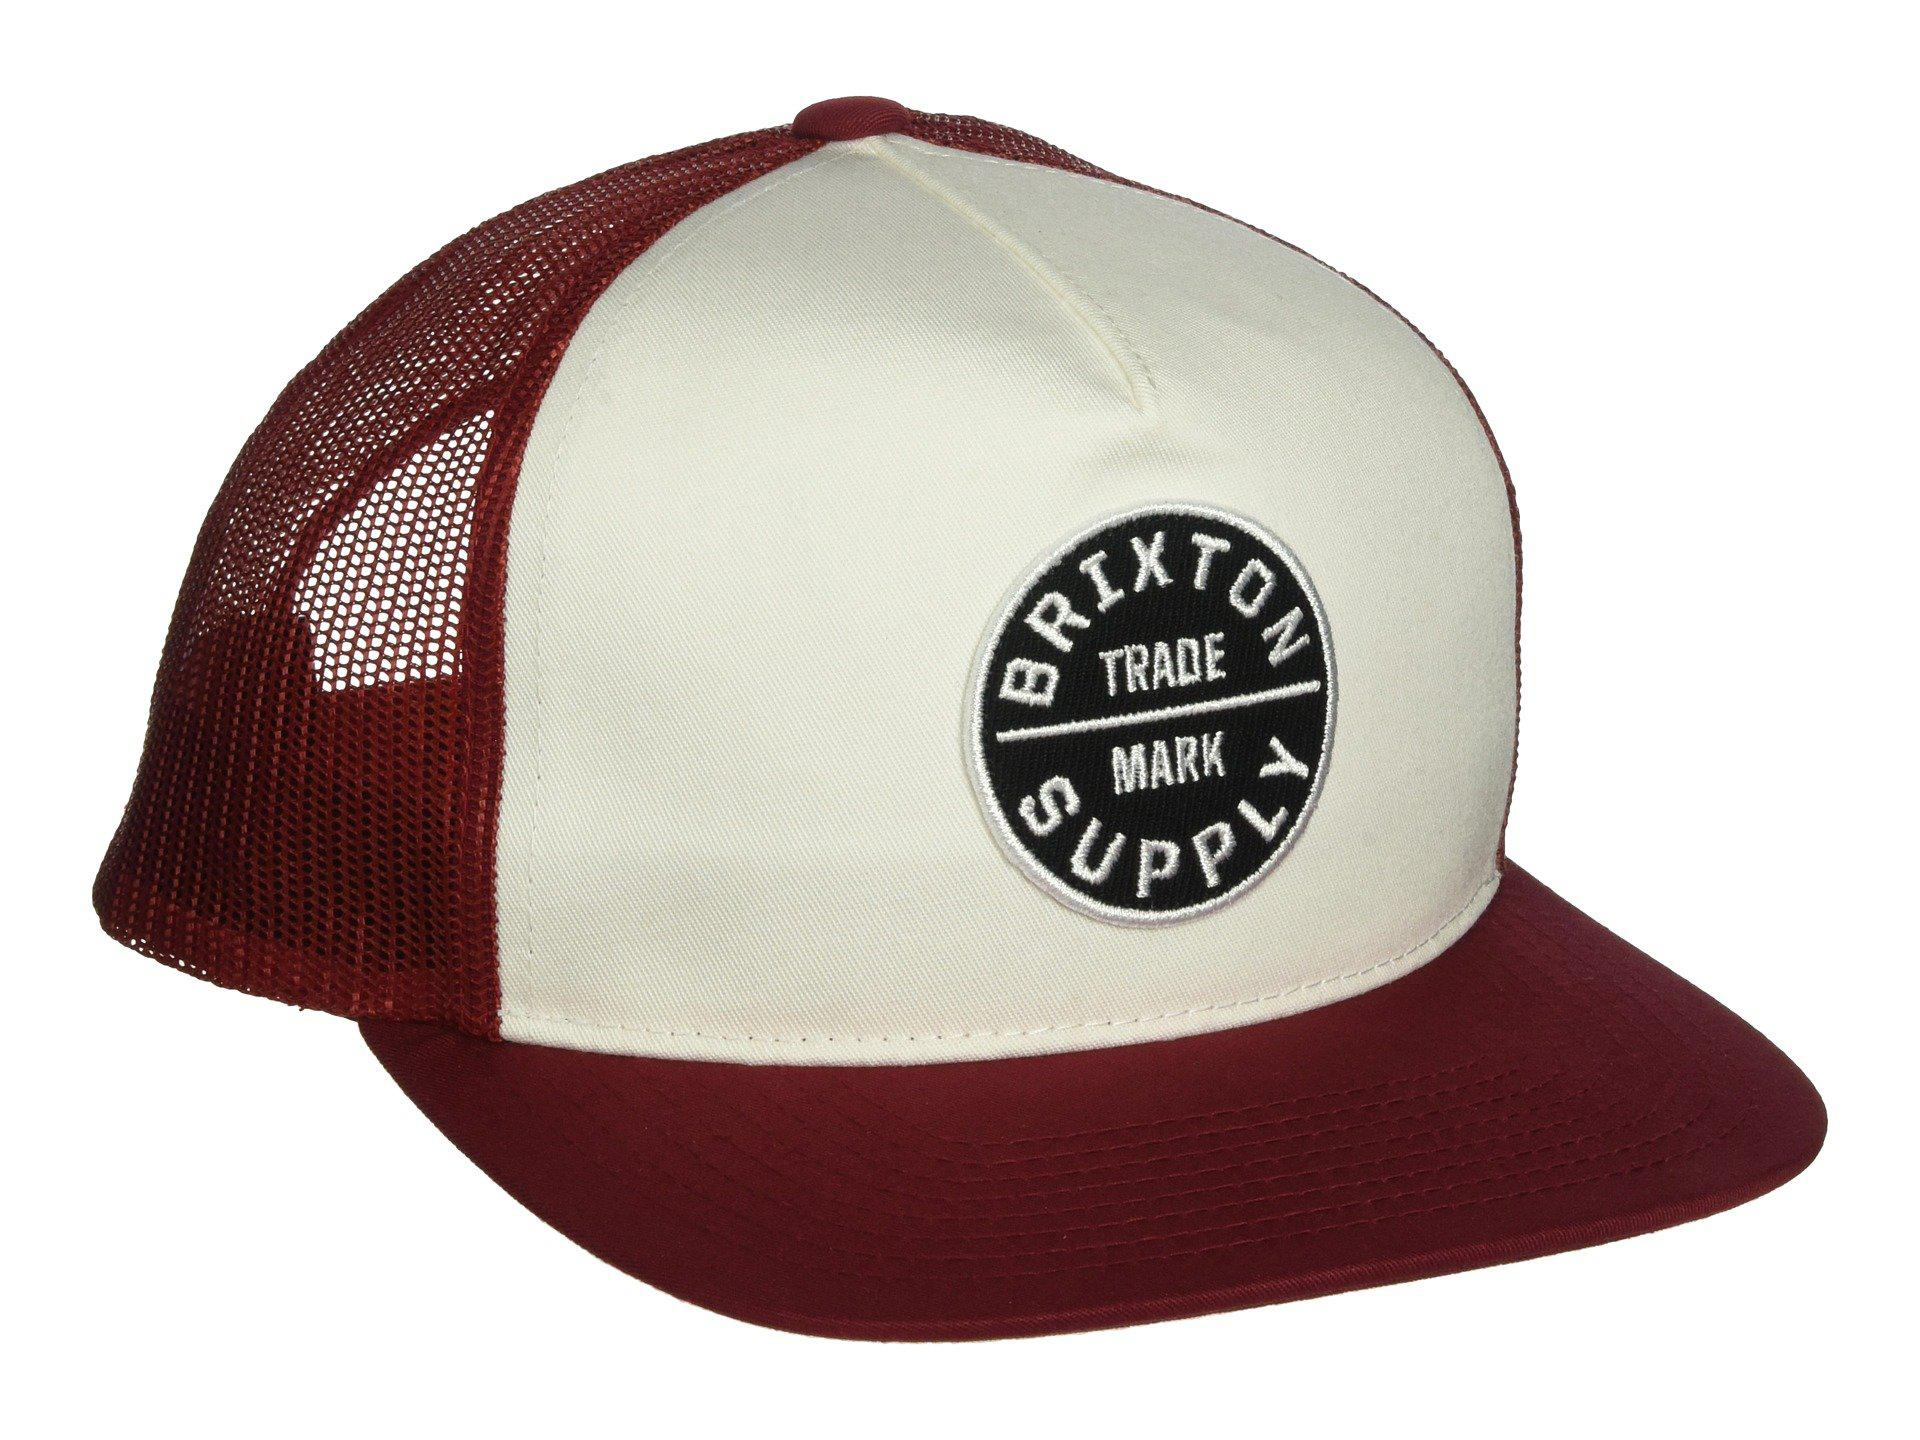 9bf52d69bf5 Lyst - Brixton Oath Iii Mesh Cap (burgundy white) Caps in Red for Men